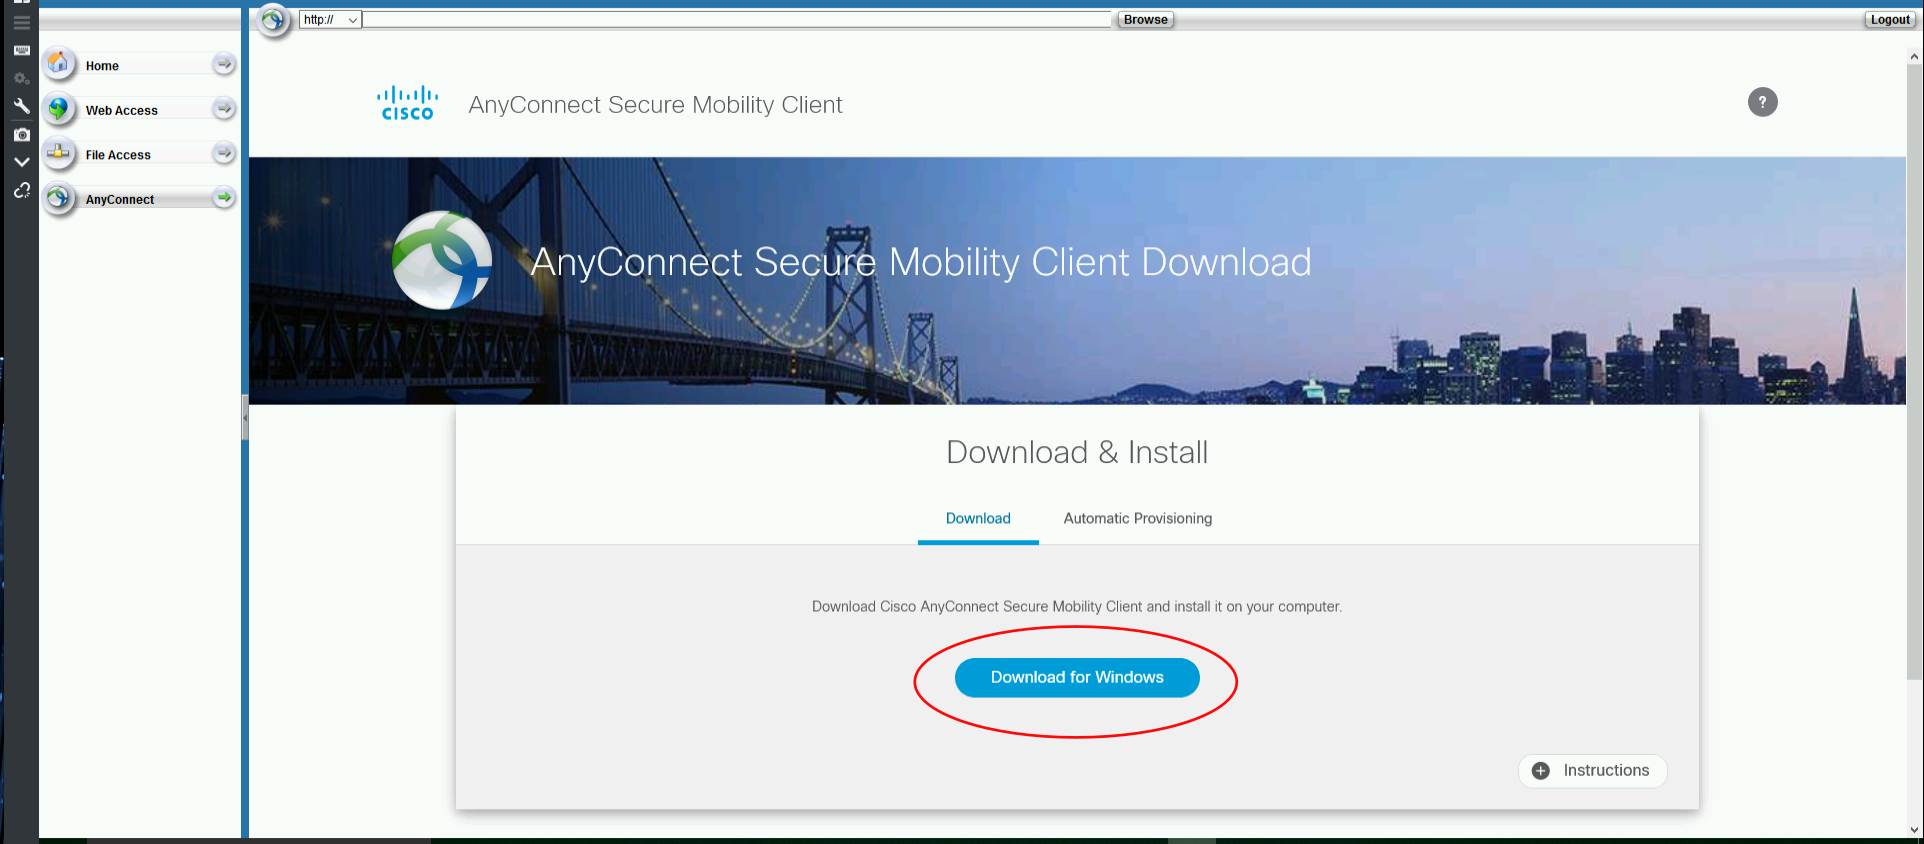 Your system will be automatically detected. The site will choose the best download based on your device and operating system. Click the download button to download the installer.